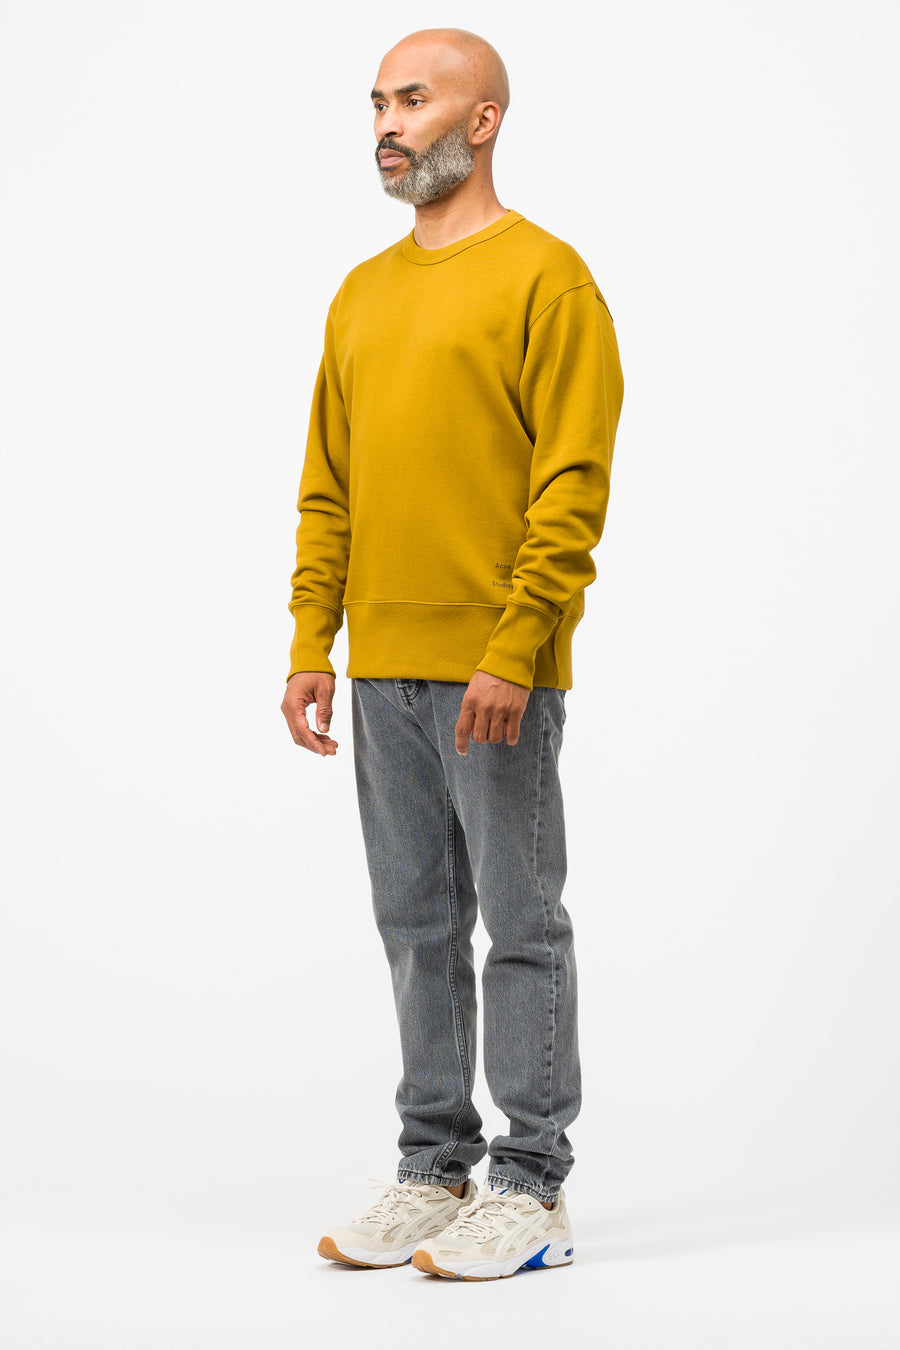 Acne Studios Fayze Logo Crewneck in Oil Yellow - Notre